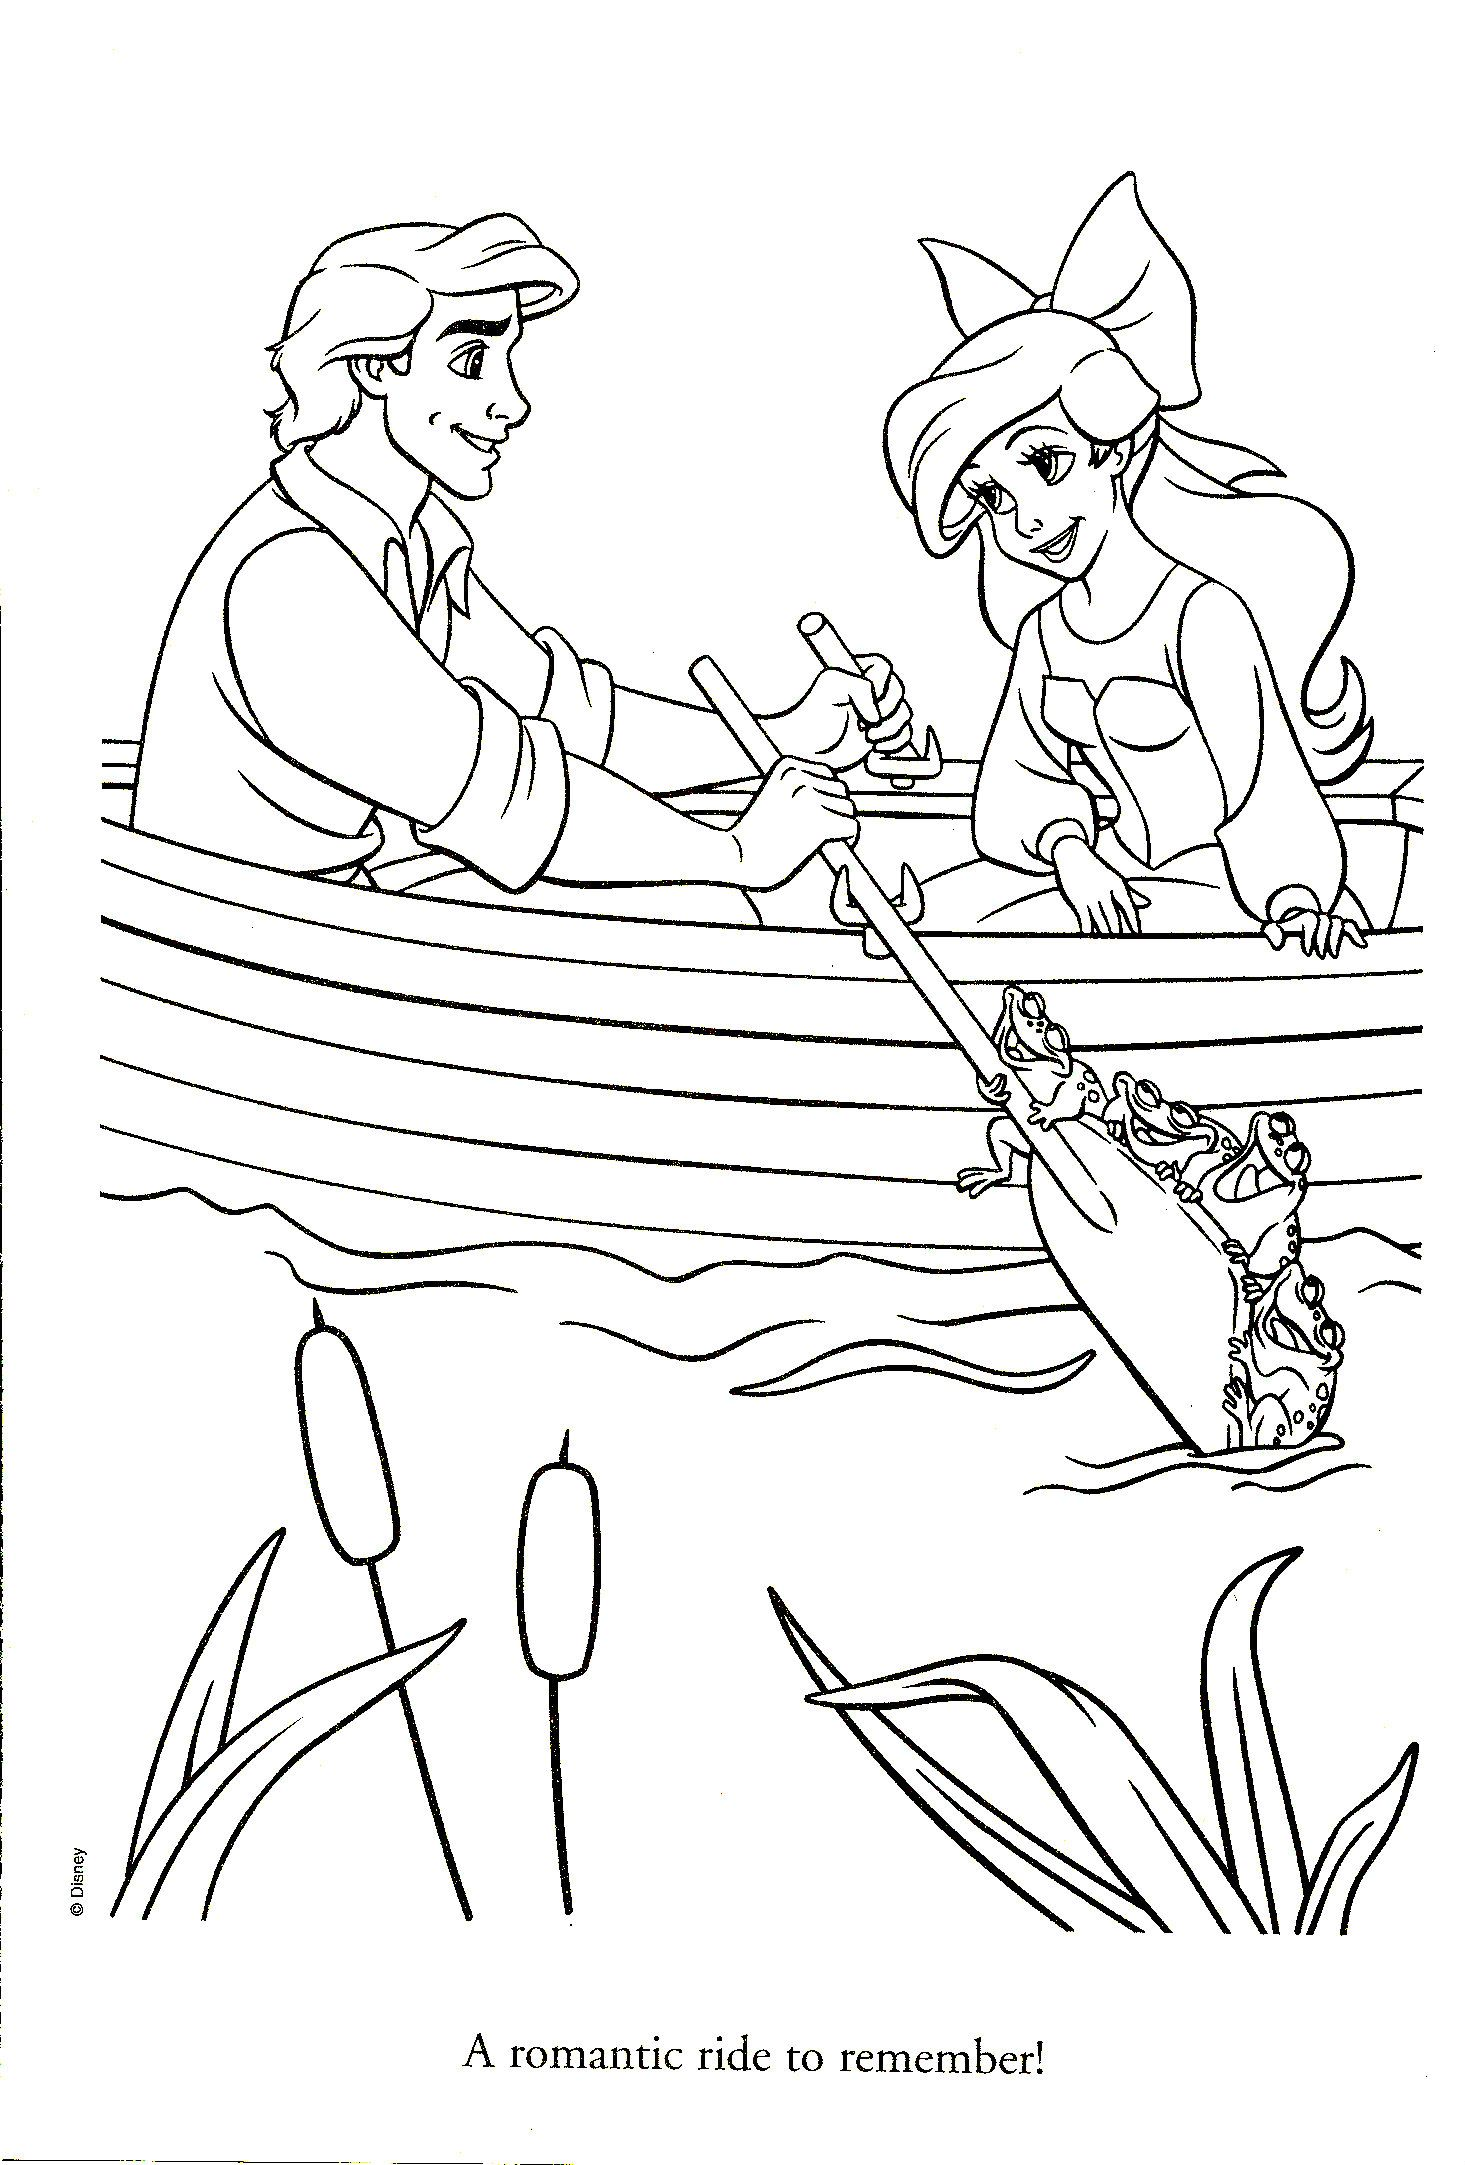 Pin By Taylor Leann On Coloring Pages Disney Princess Coloring Pages Disney Coloring Pages Princess Coloring Pages